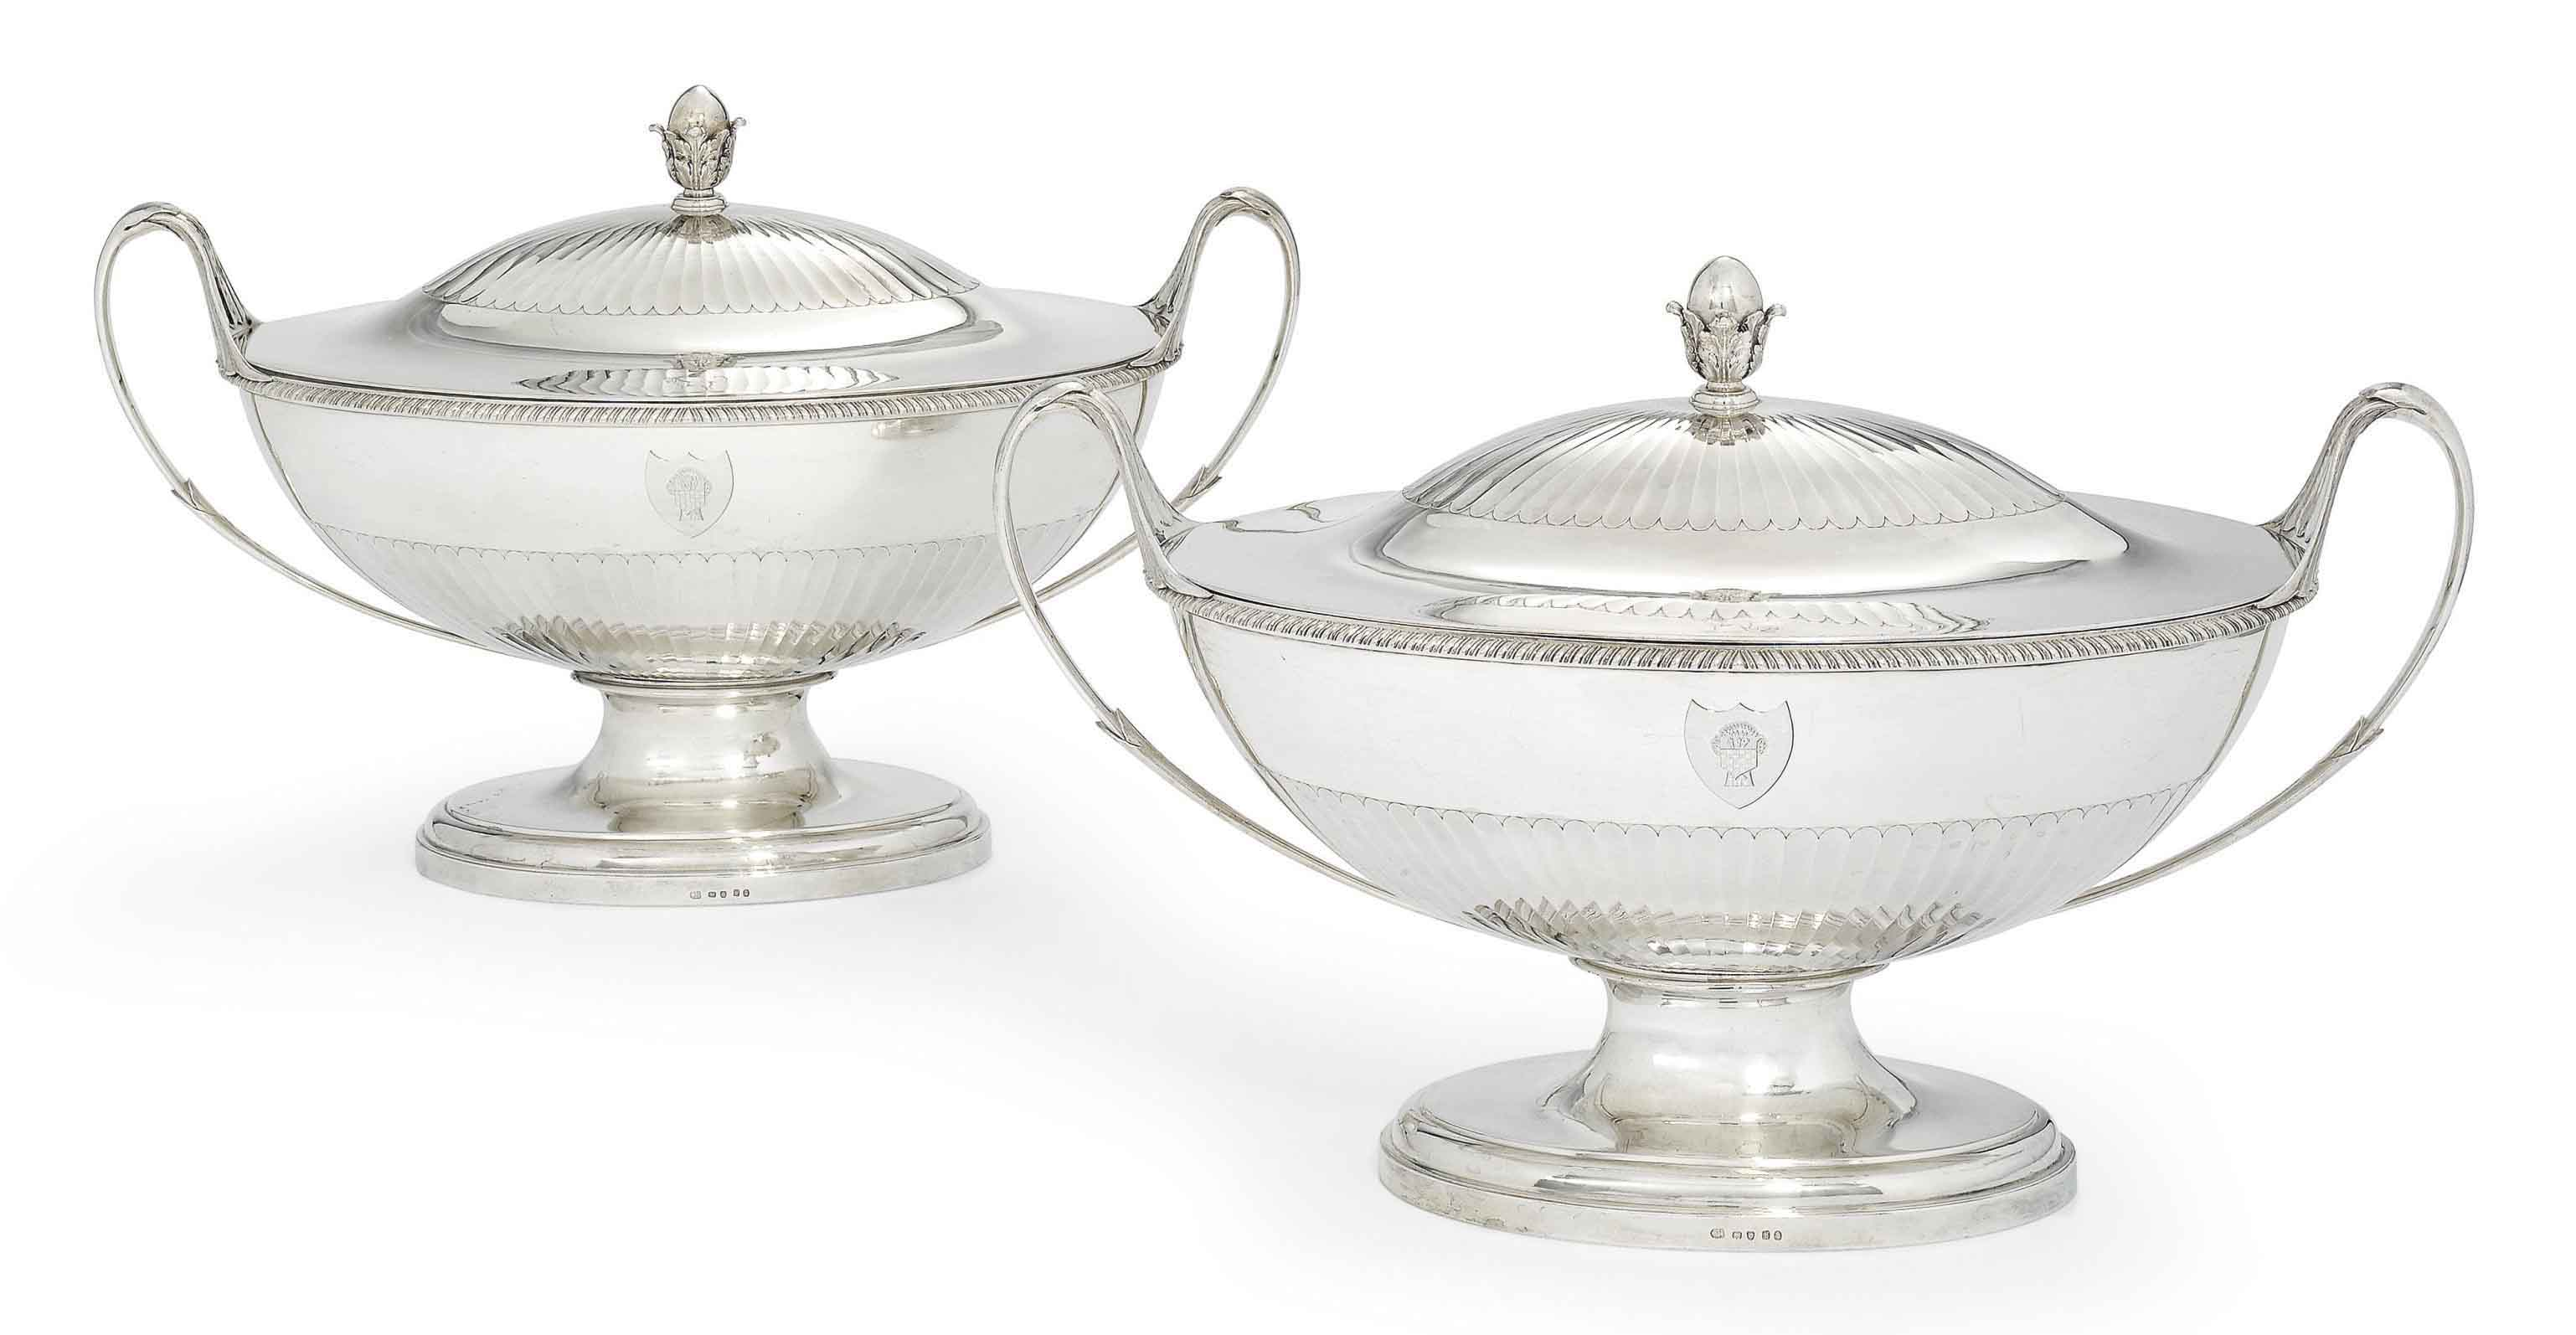 A PAIR OF GEORGE III SILVER SOUP-TUREENS